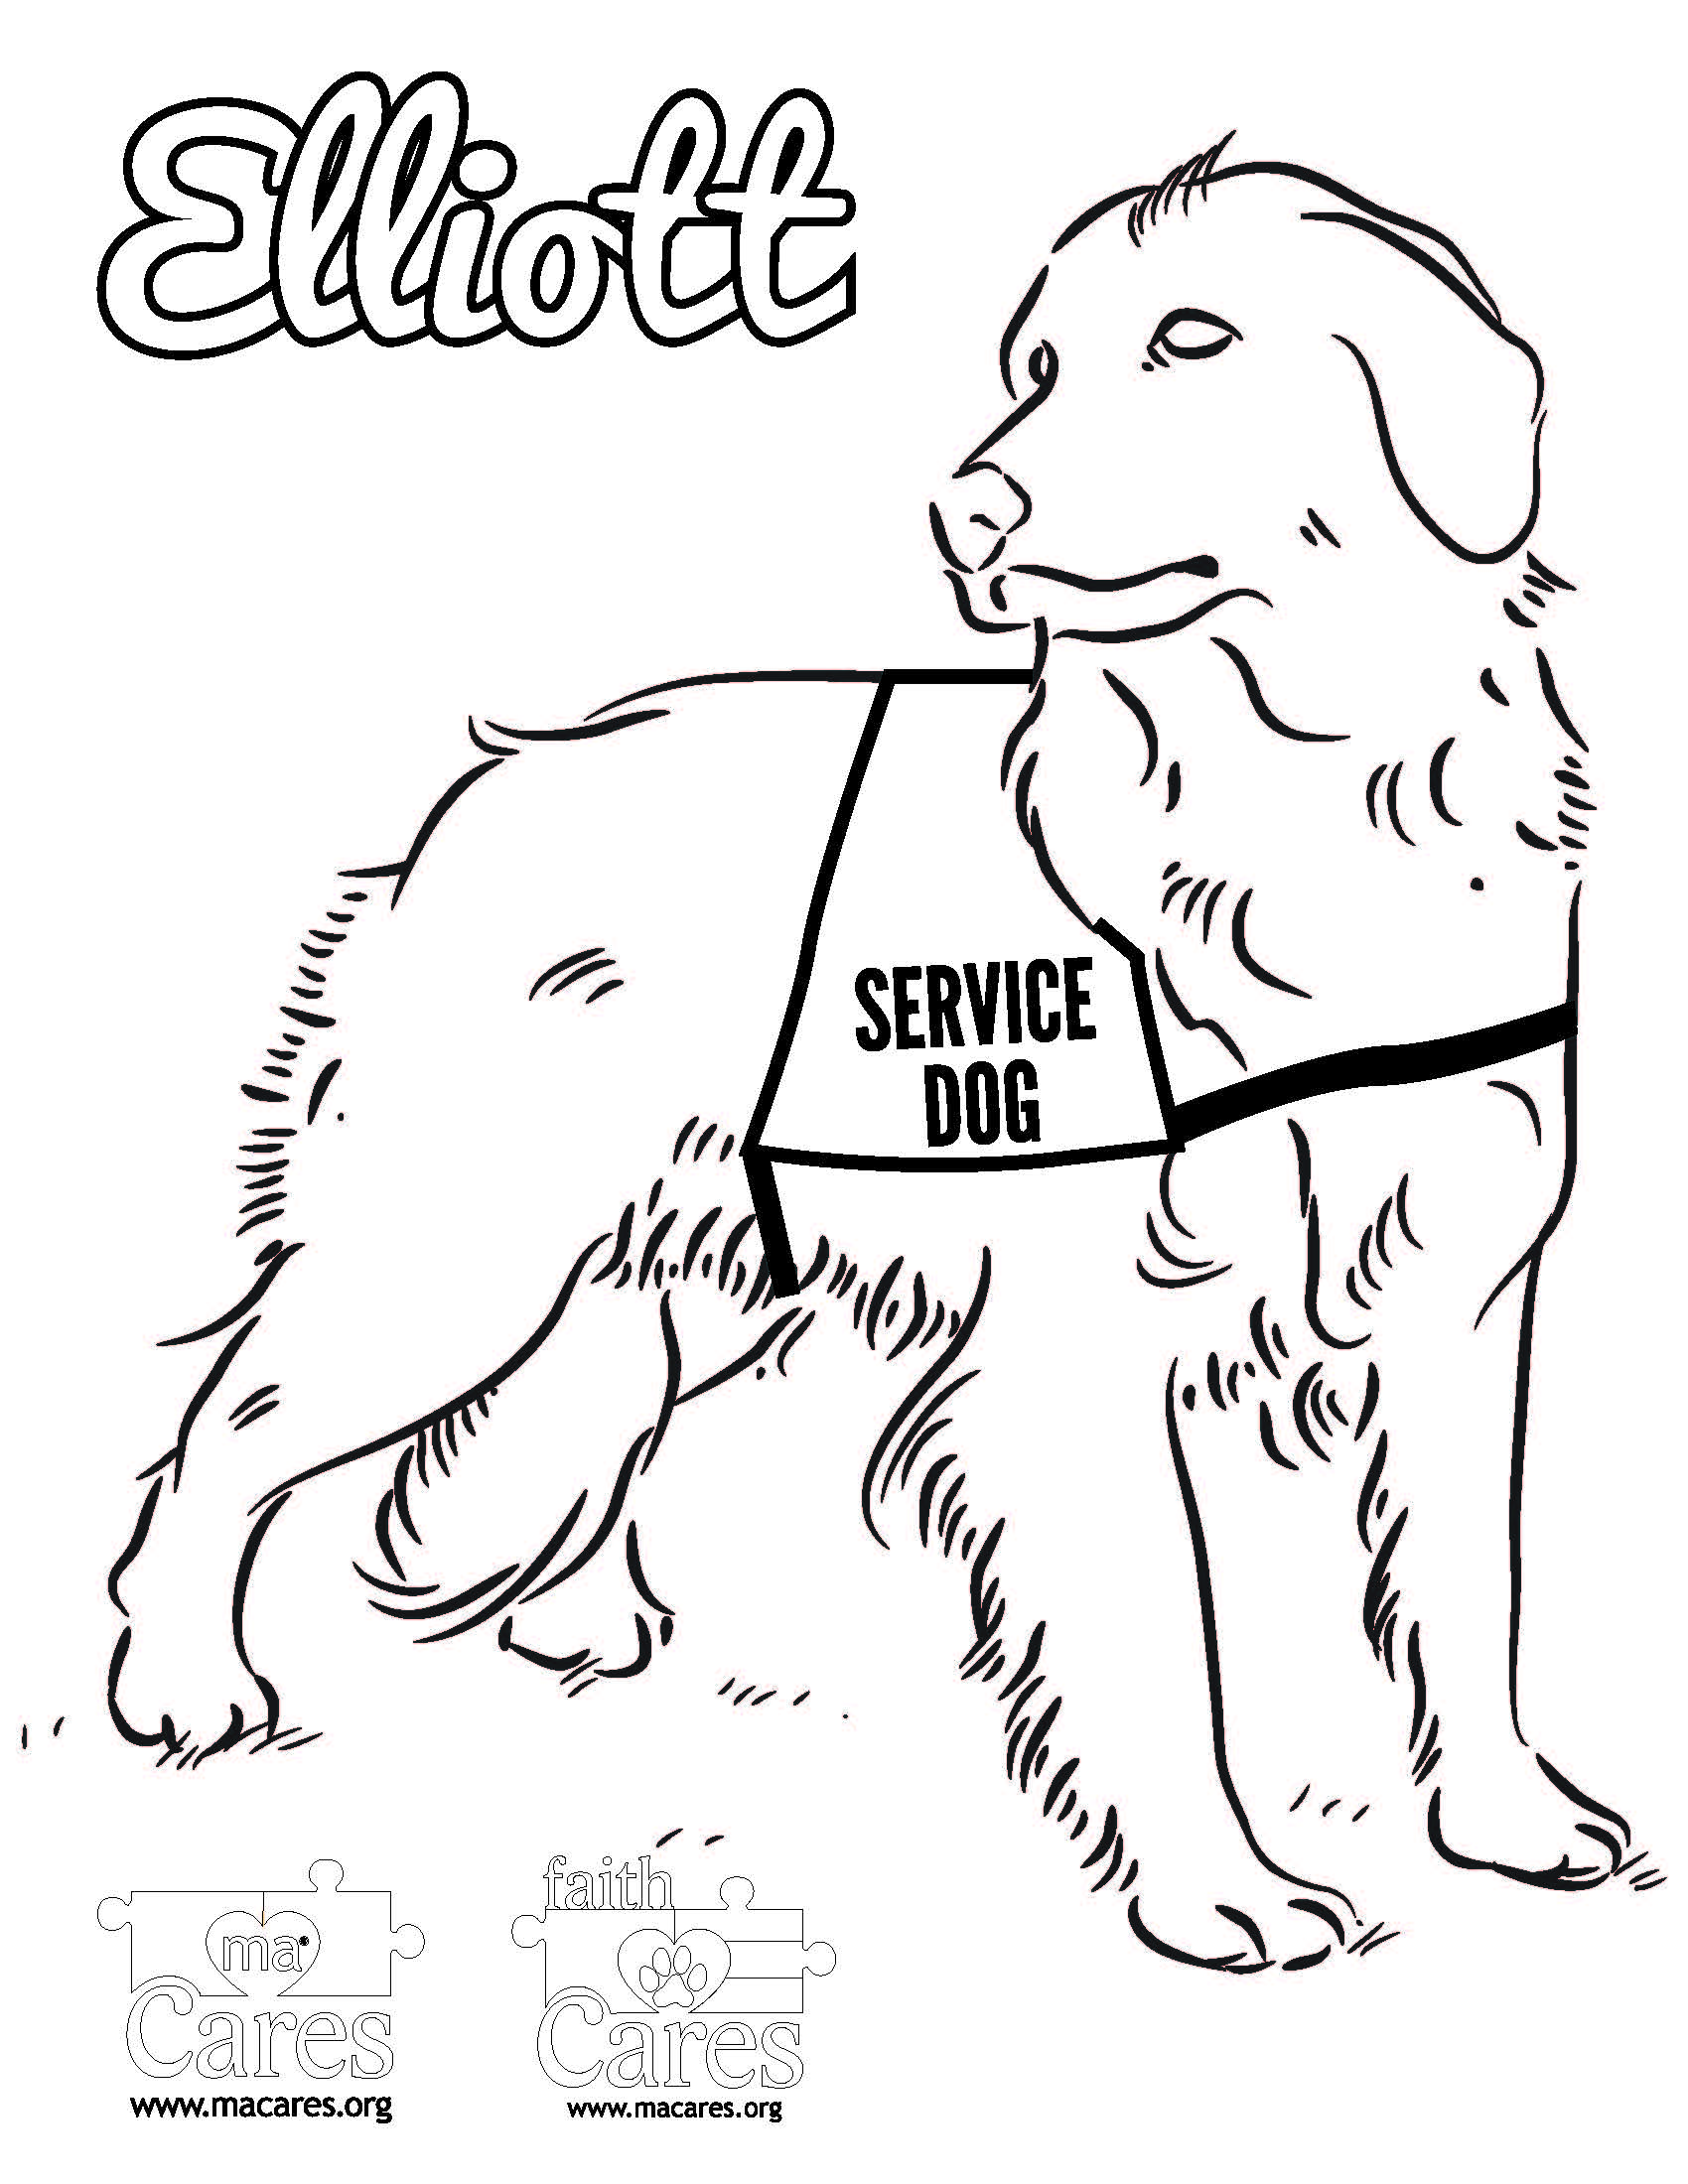 ELLIOTT faith Cares Service Dog